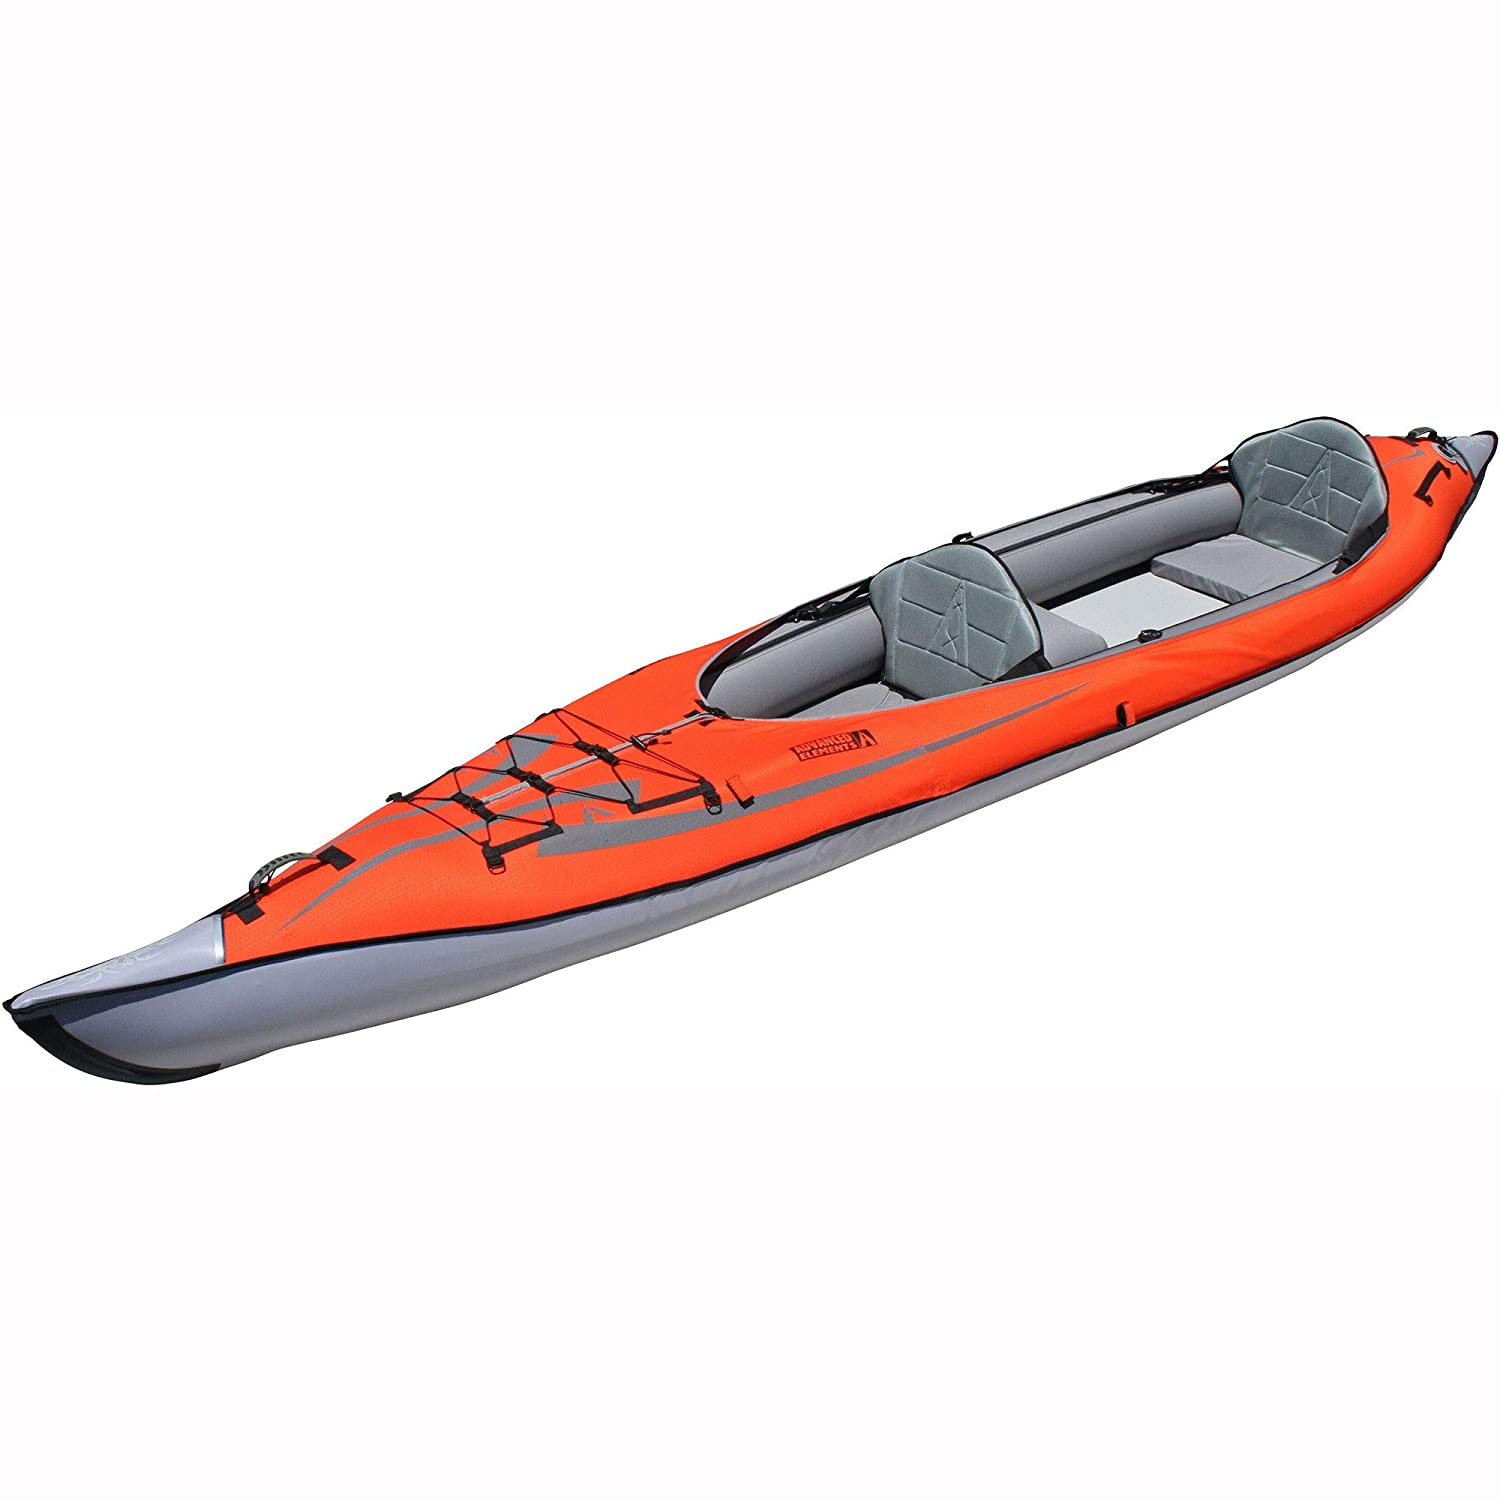 ADVANCED ELEMENTS AdvancedFrame Convertible Elite Inflatable Kayak